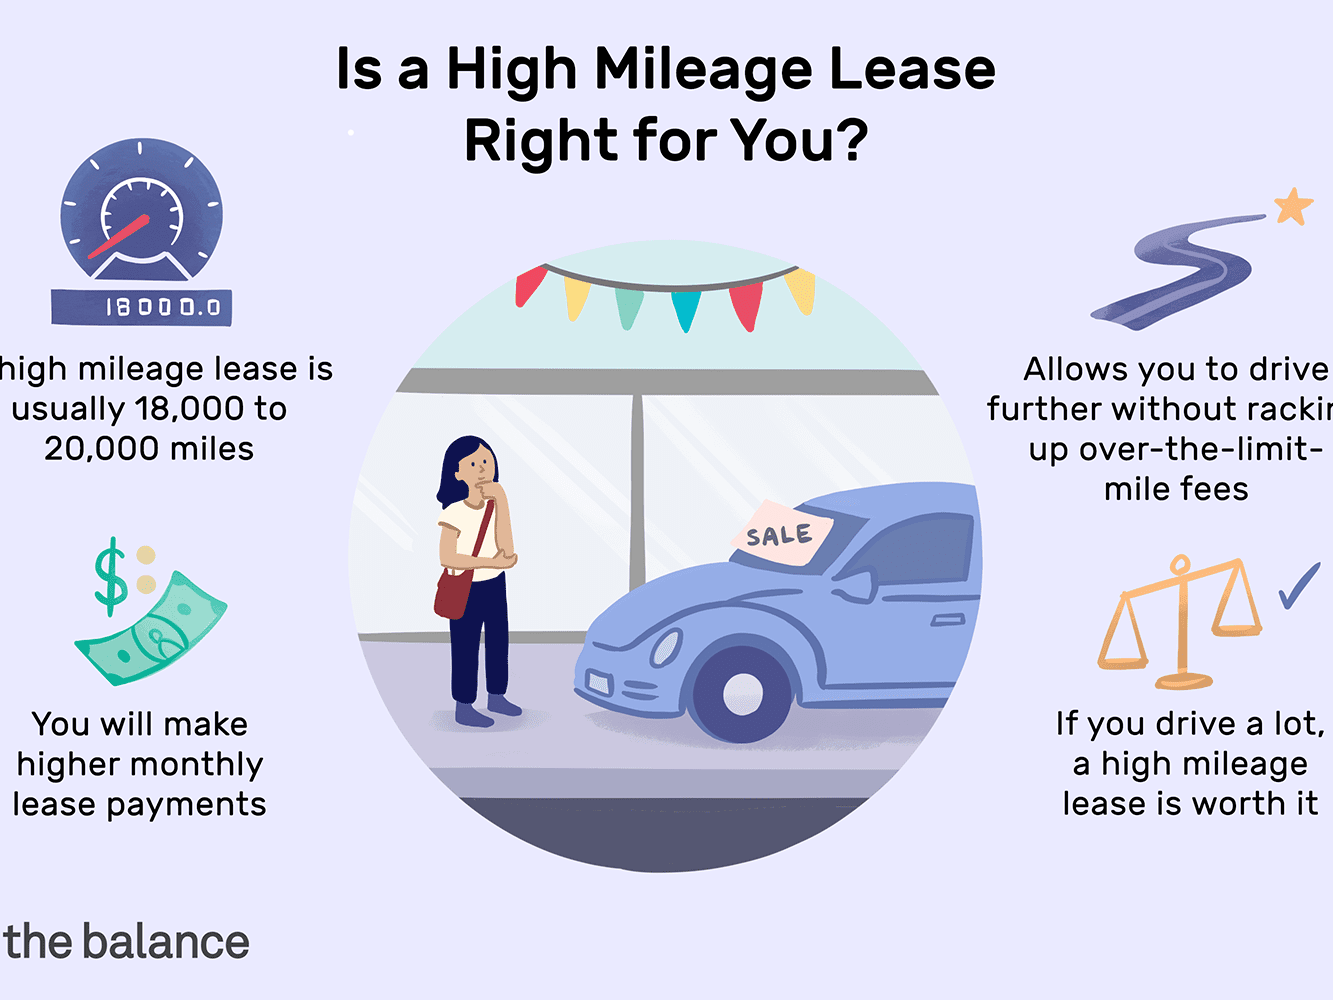 Is A High Mileage Lease Right For Me